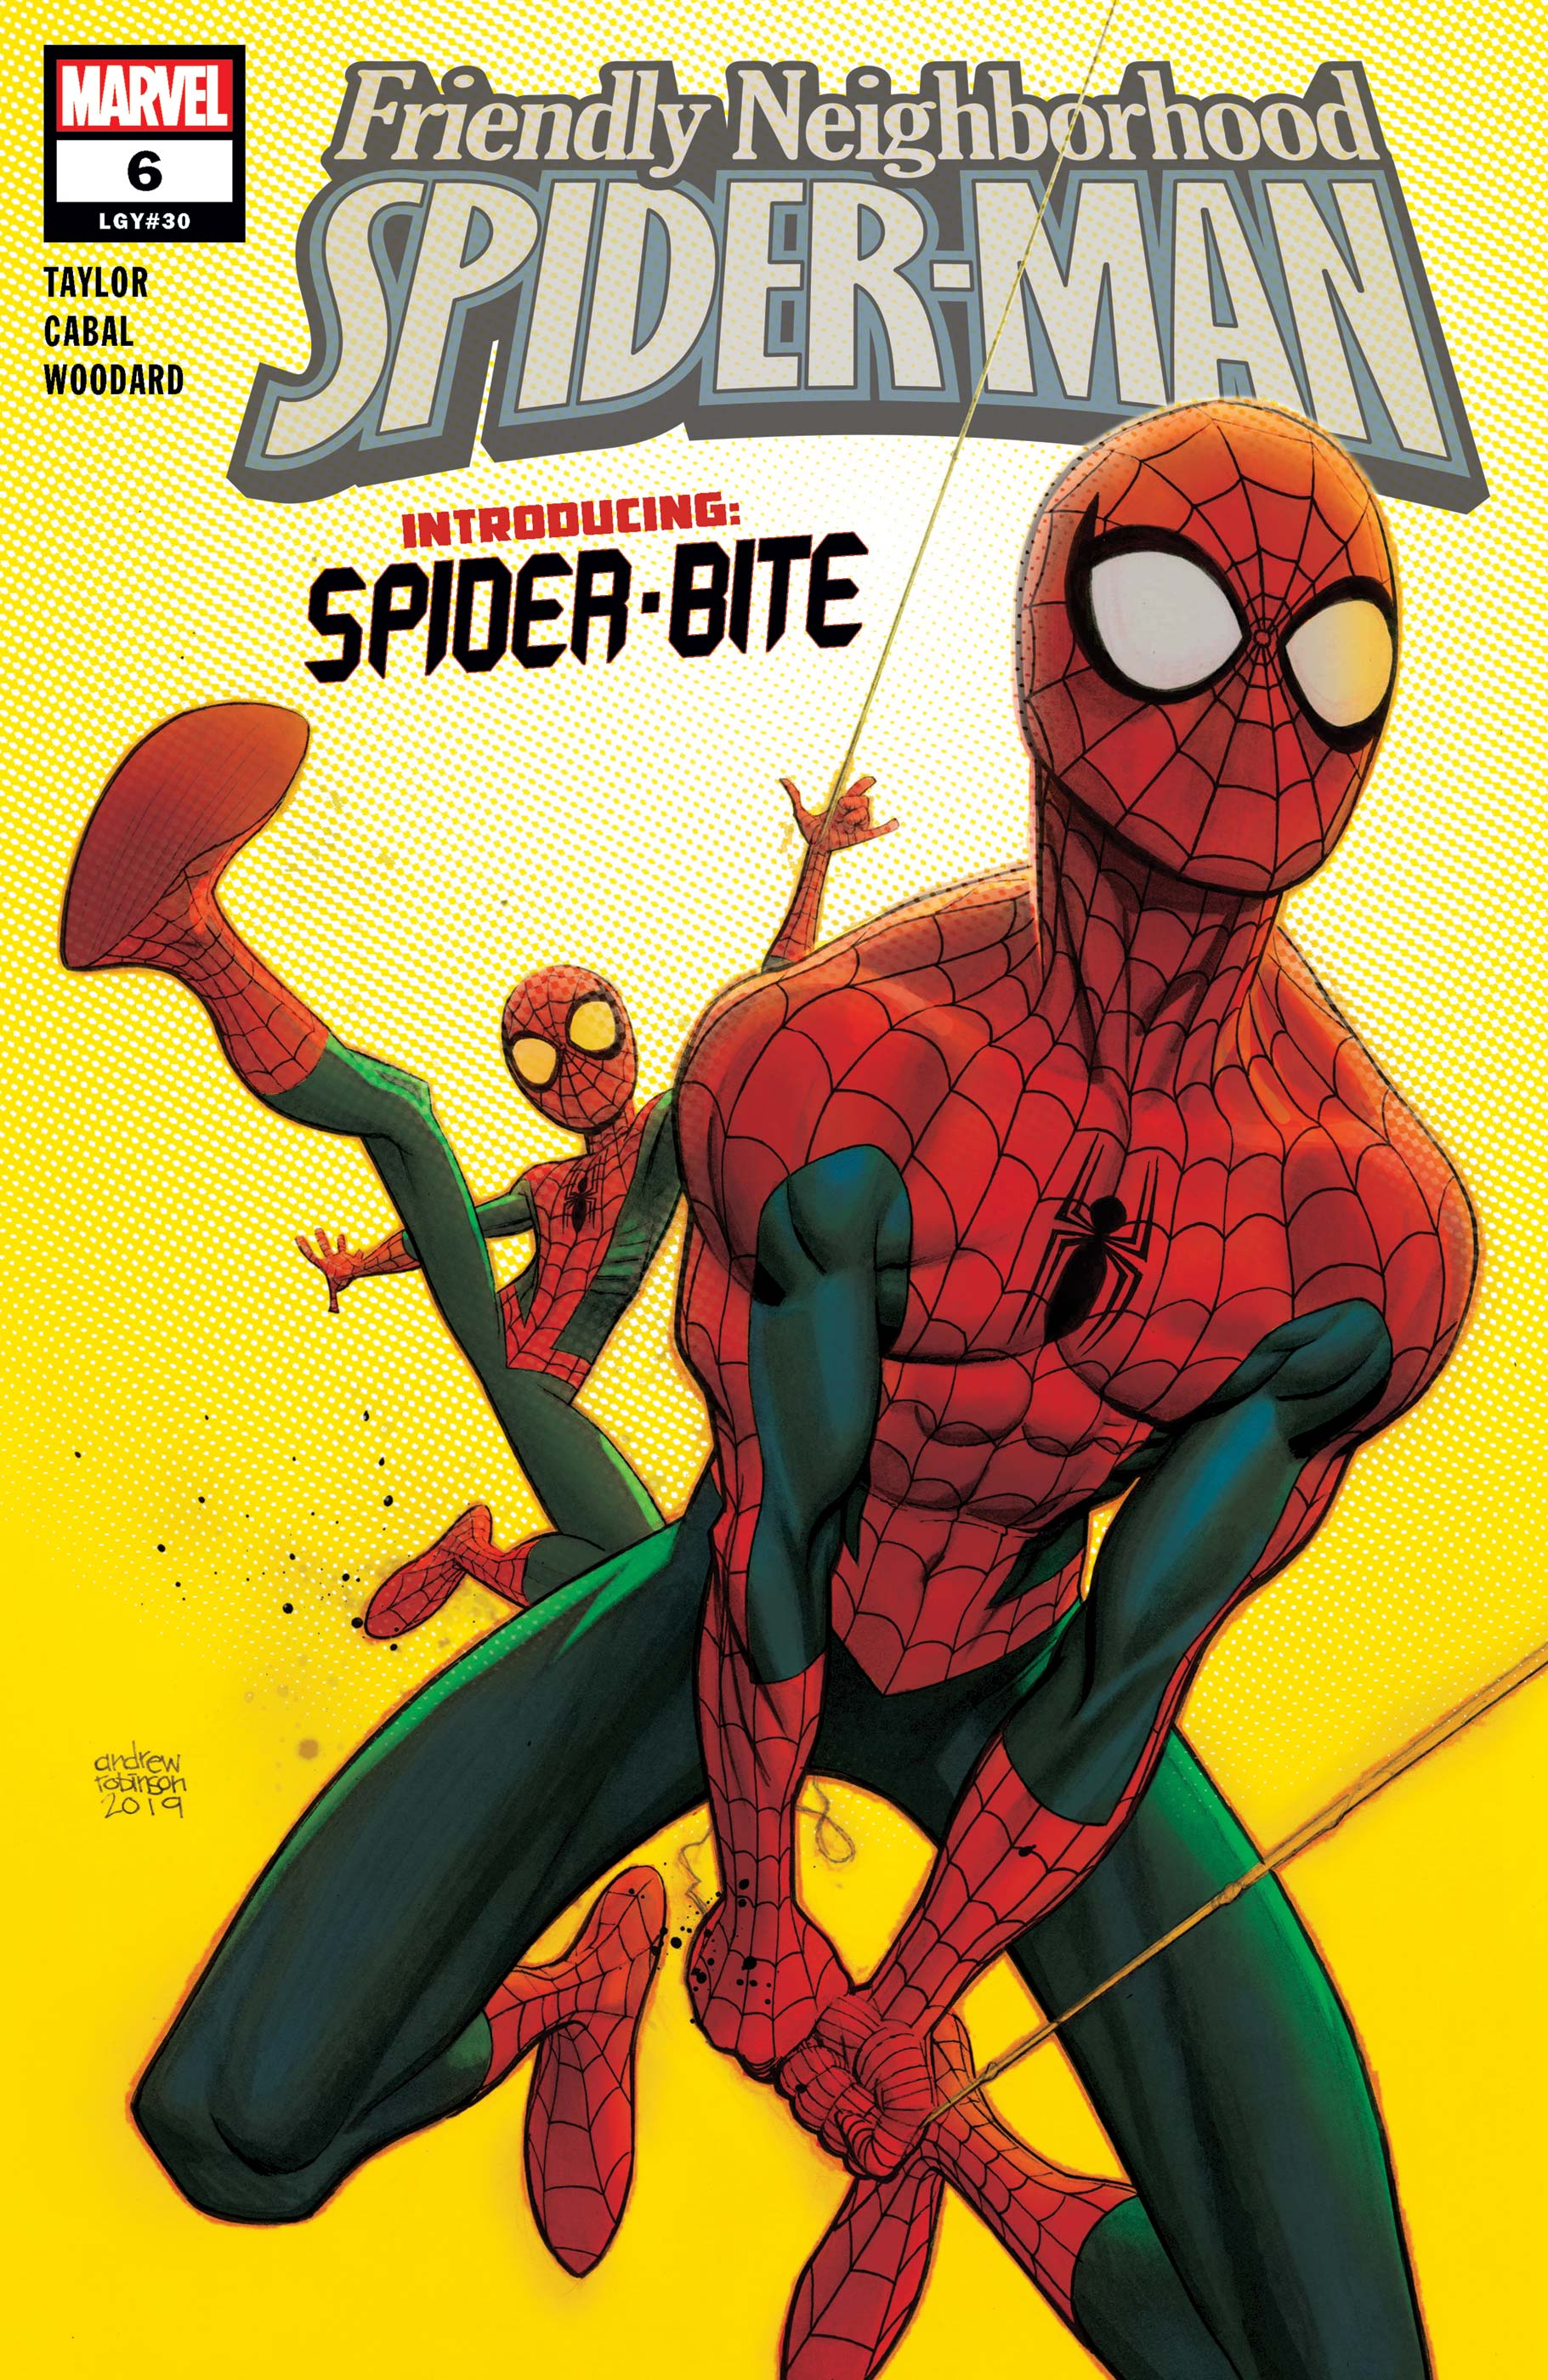 Friendly Neighborhood Spider-Man (2019) #6